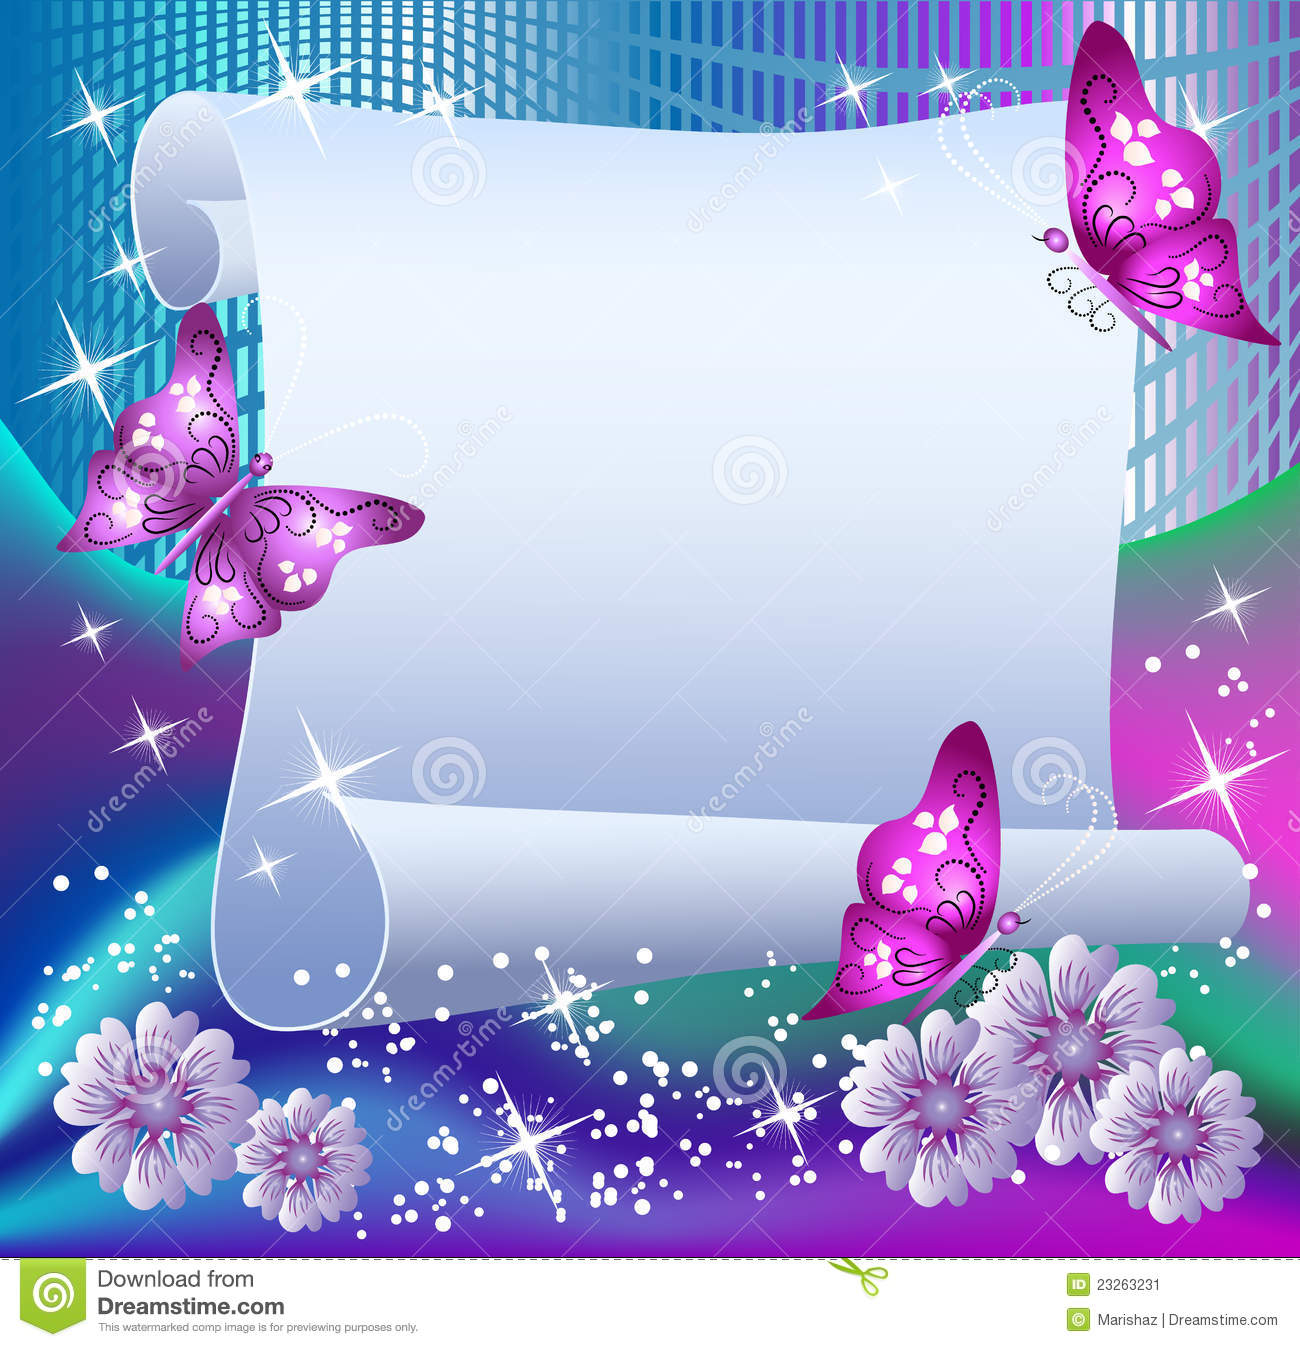 Magic background with paper, butterflies and a place for text.